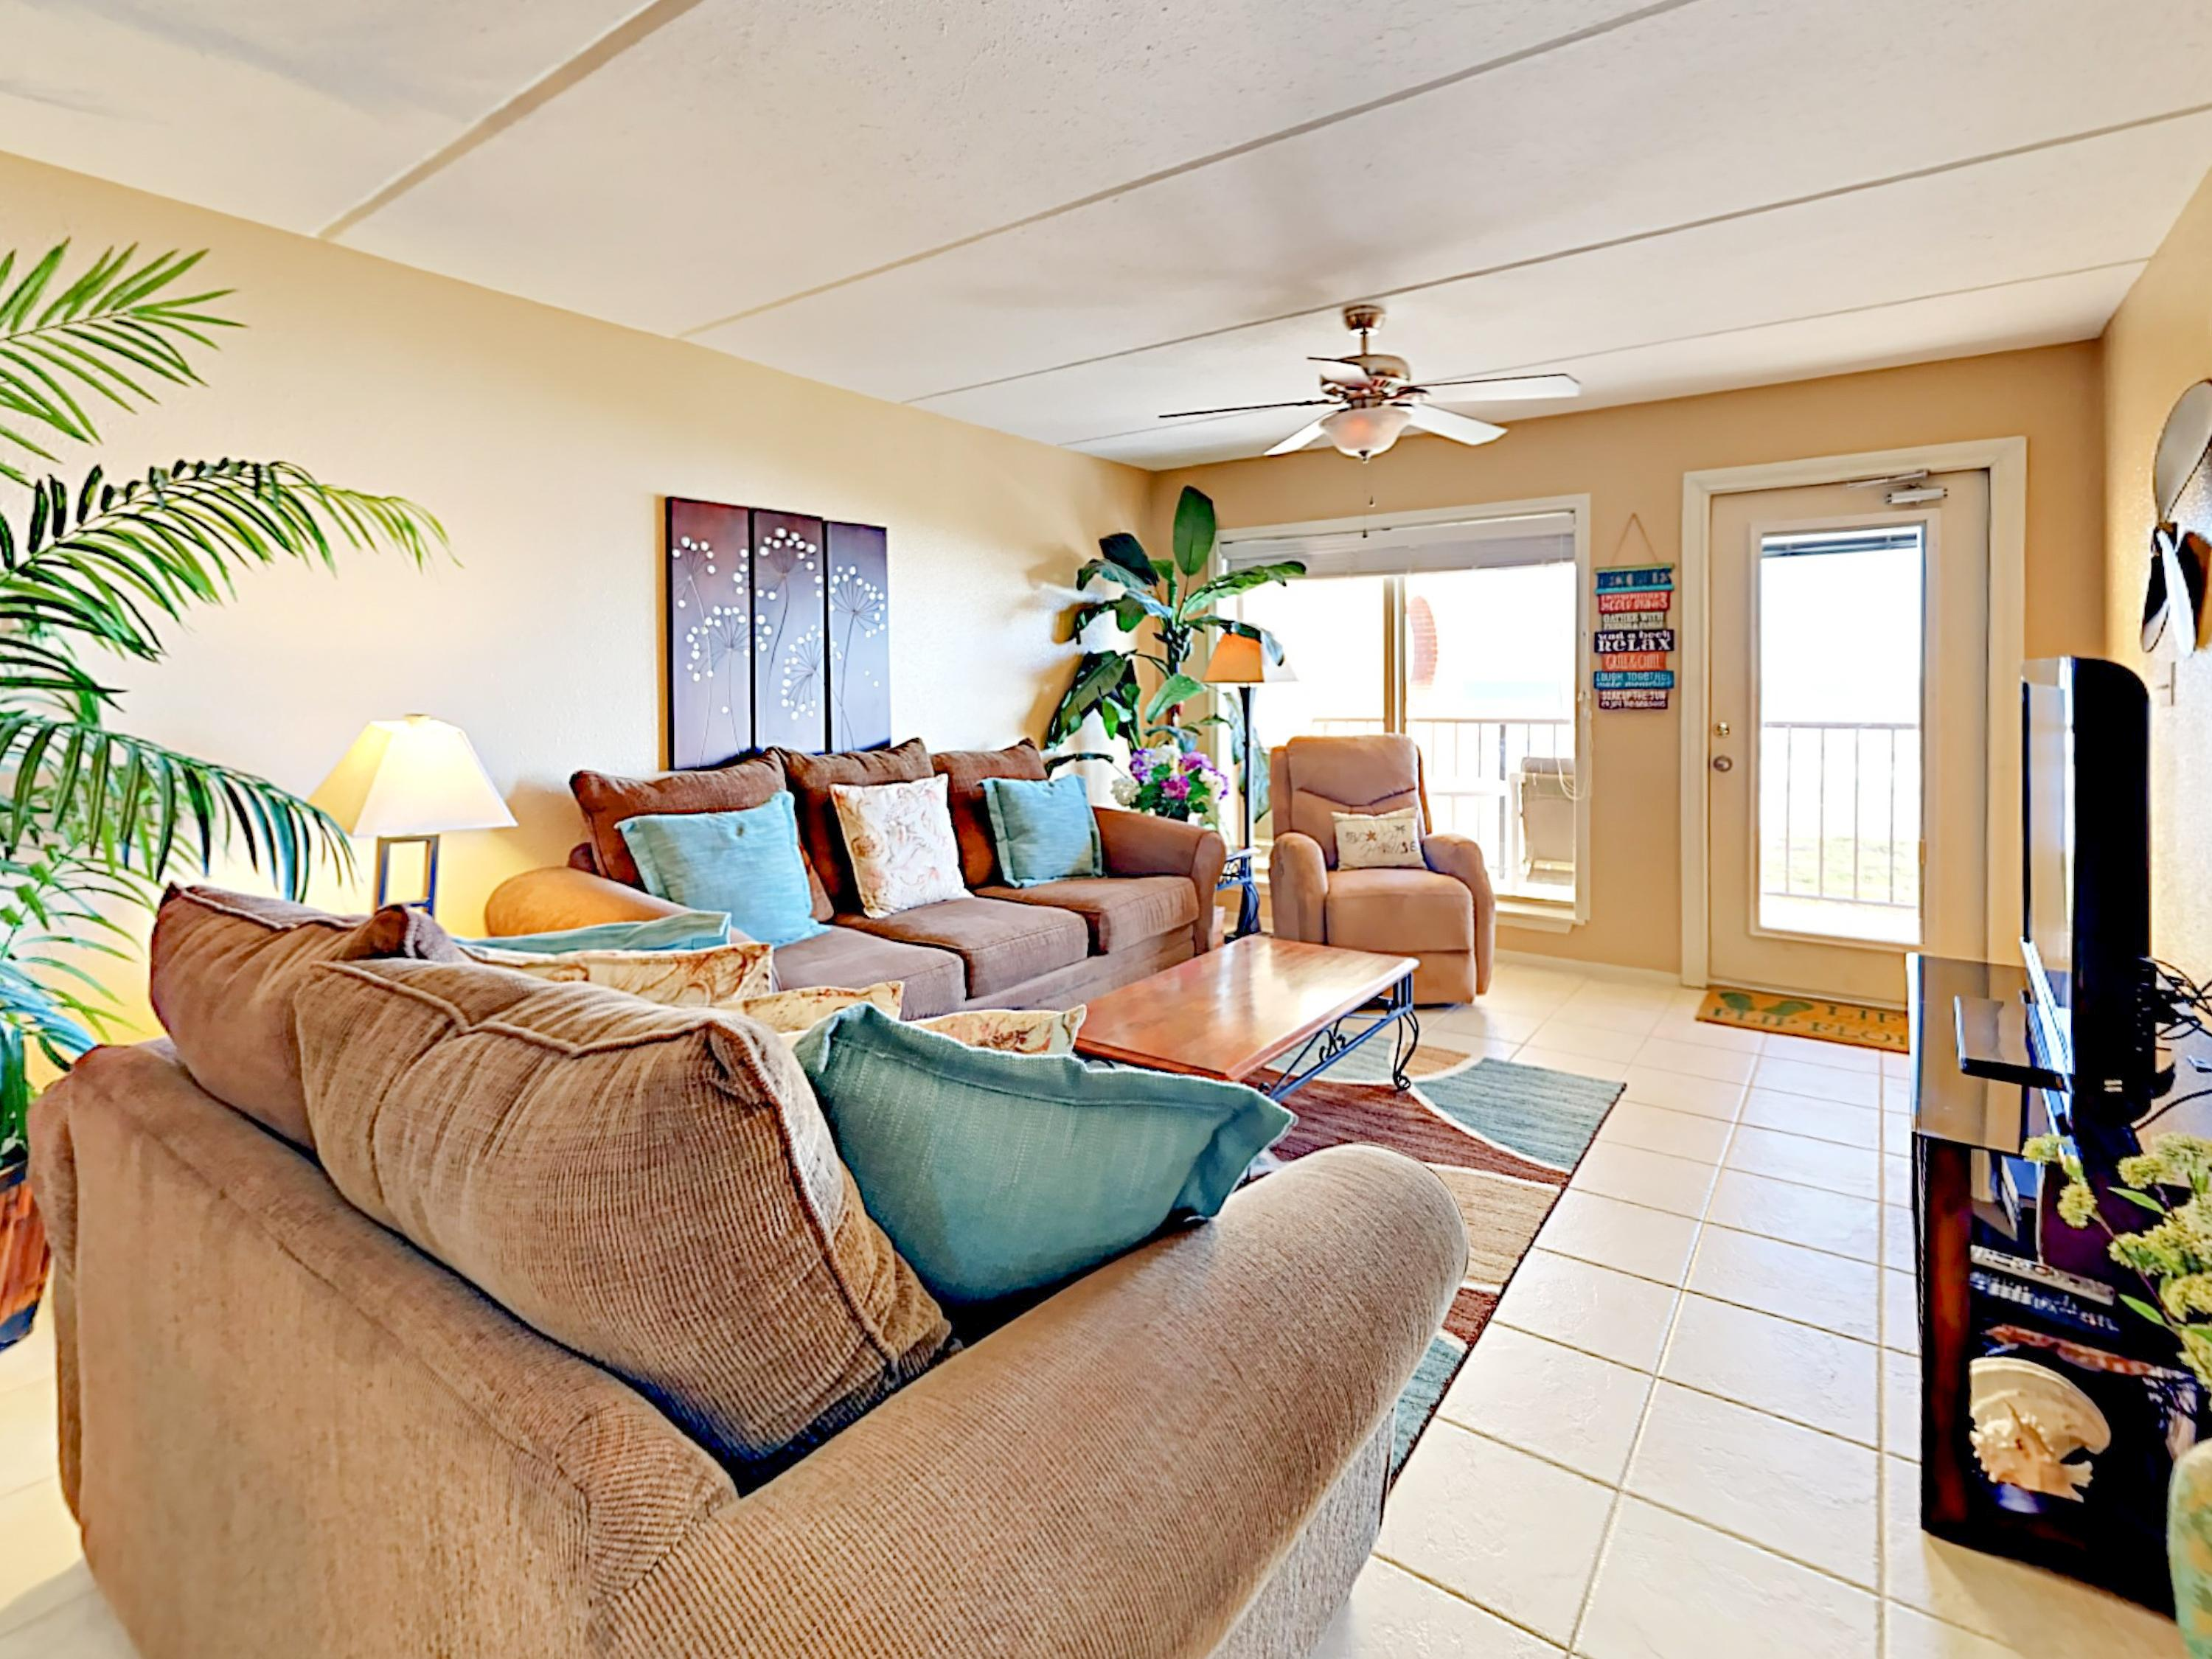 Shades of sand and sea give the living room a relaxed, coastal vibe. Professional cleaning is provided by TurnKey's housekeeping staff.